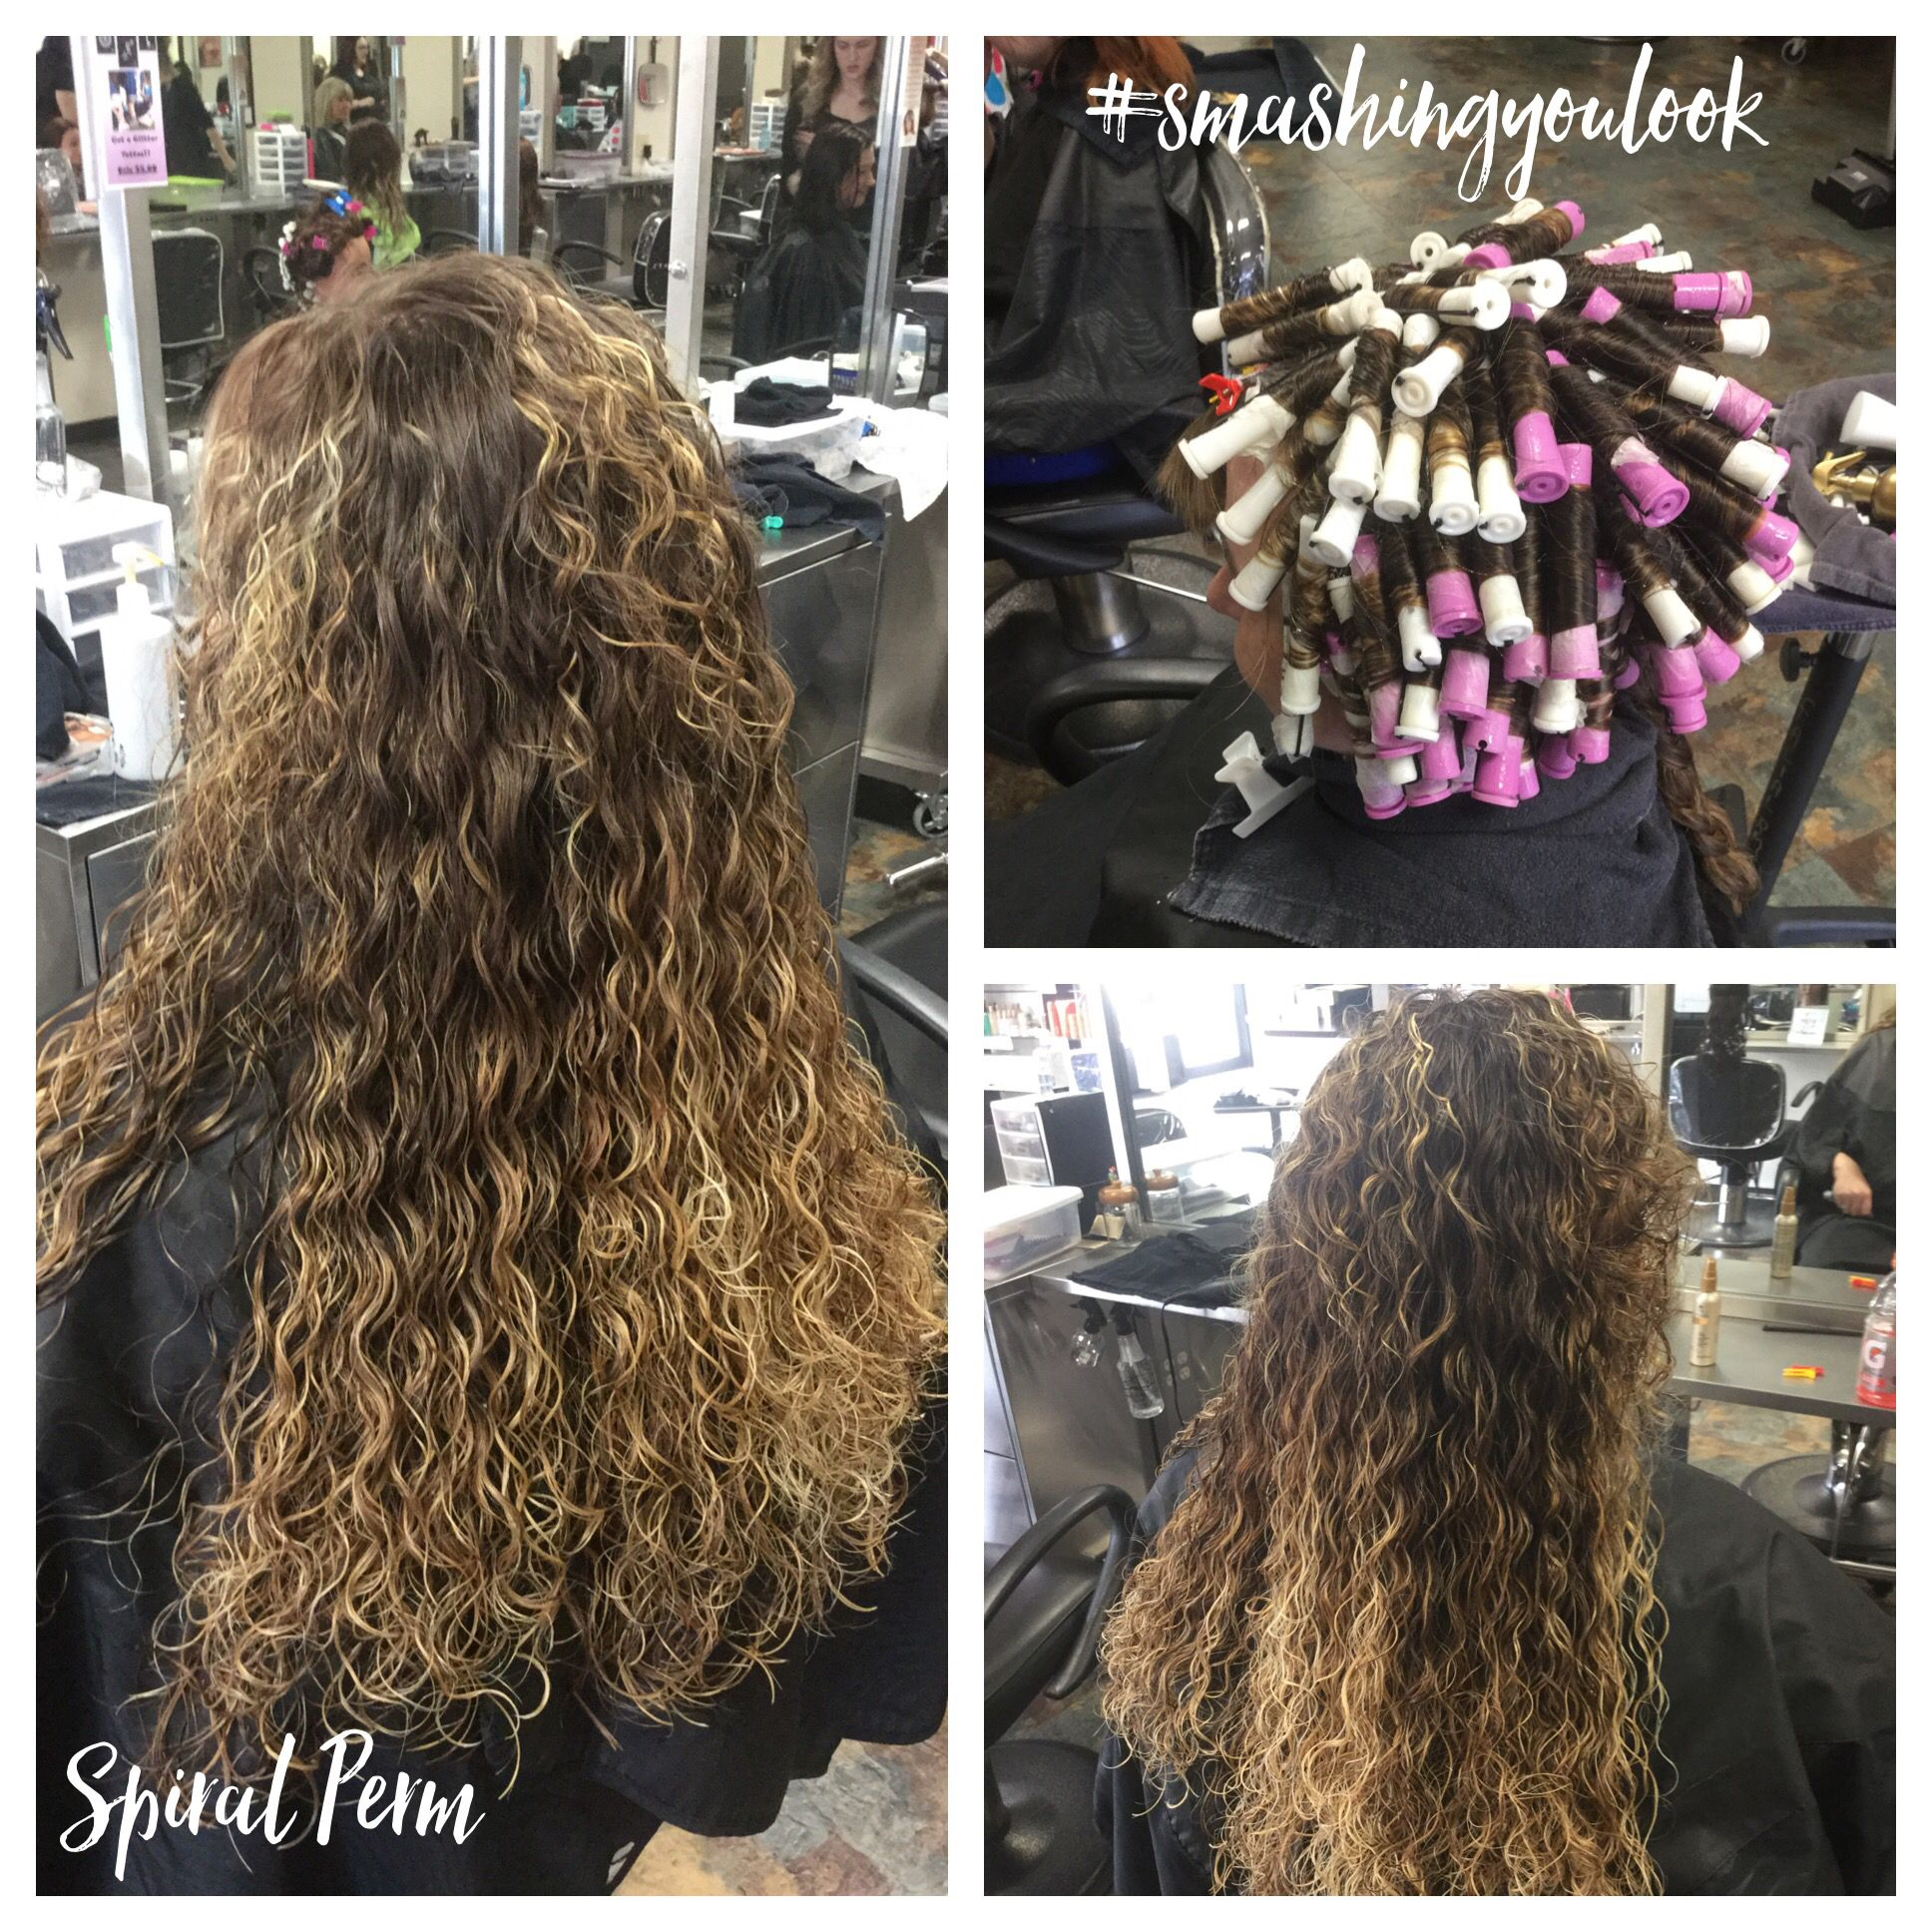 Straight perm solution - Find This Pin And More On Perming Chemical Straightening